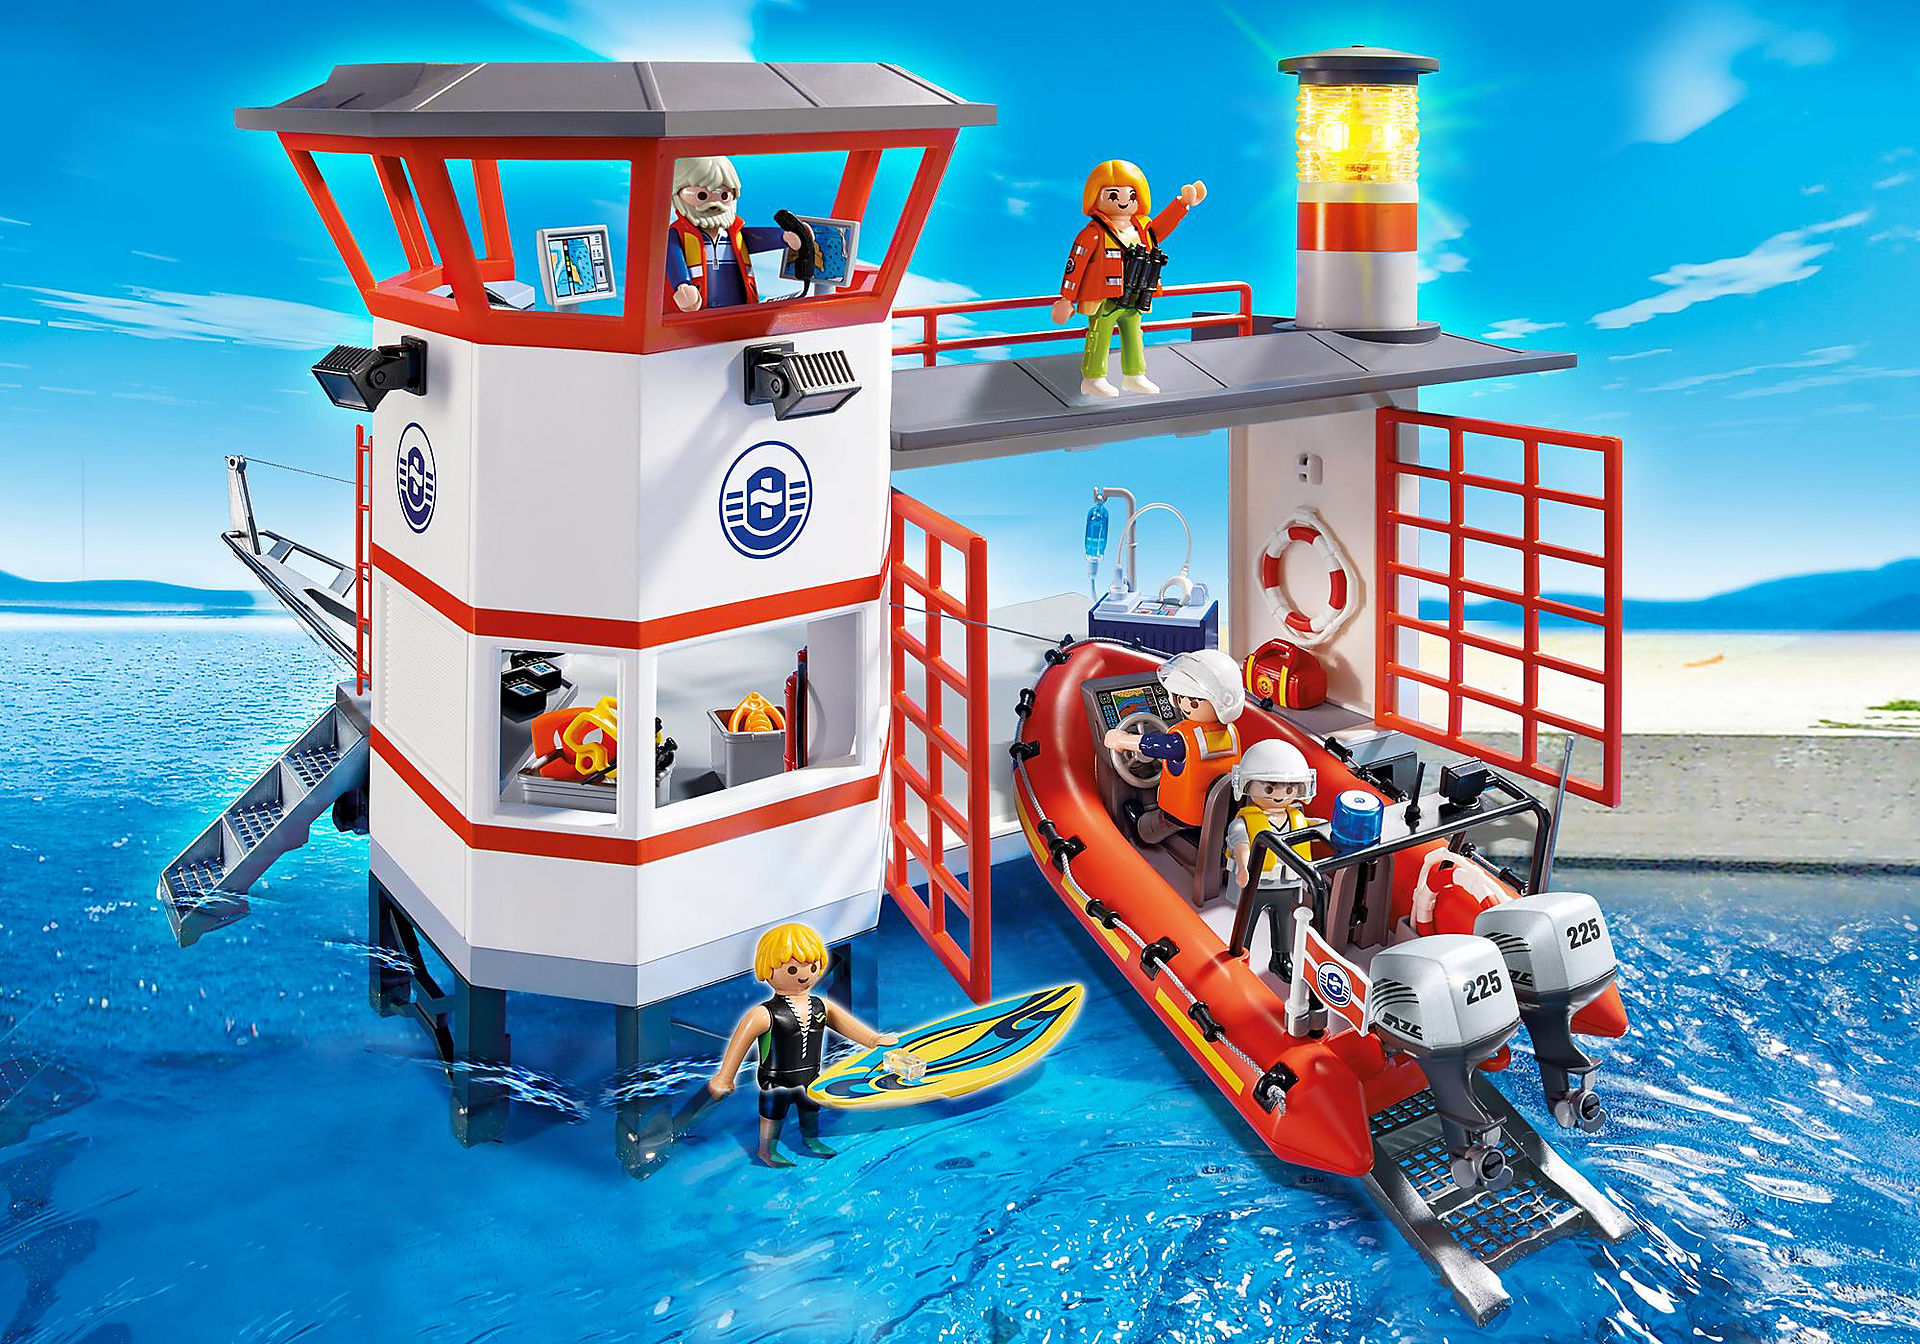 http://media.playmobil.com/i/playmobil/5539_product_detail/Πλωτή βάση ακτ/κής με φάρο